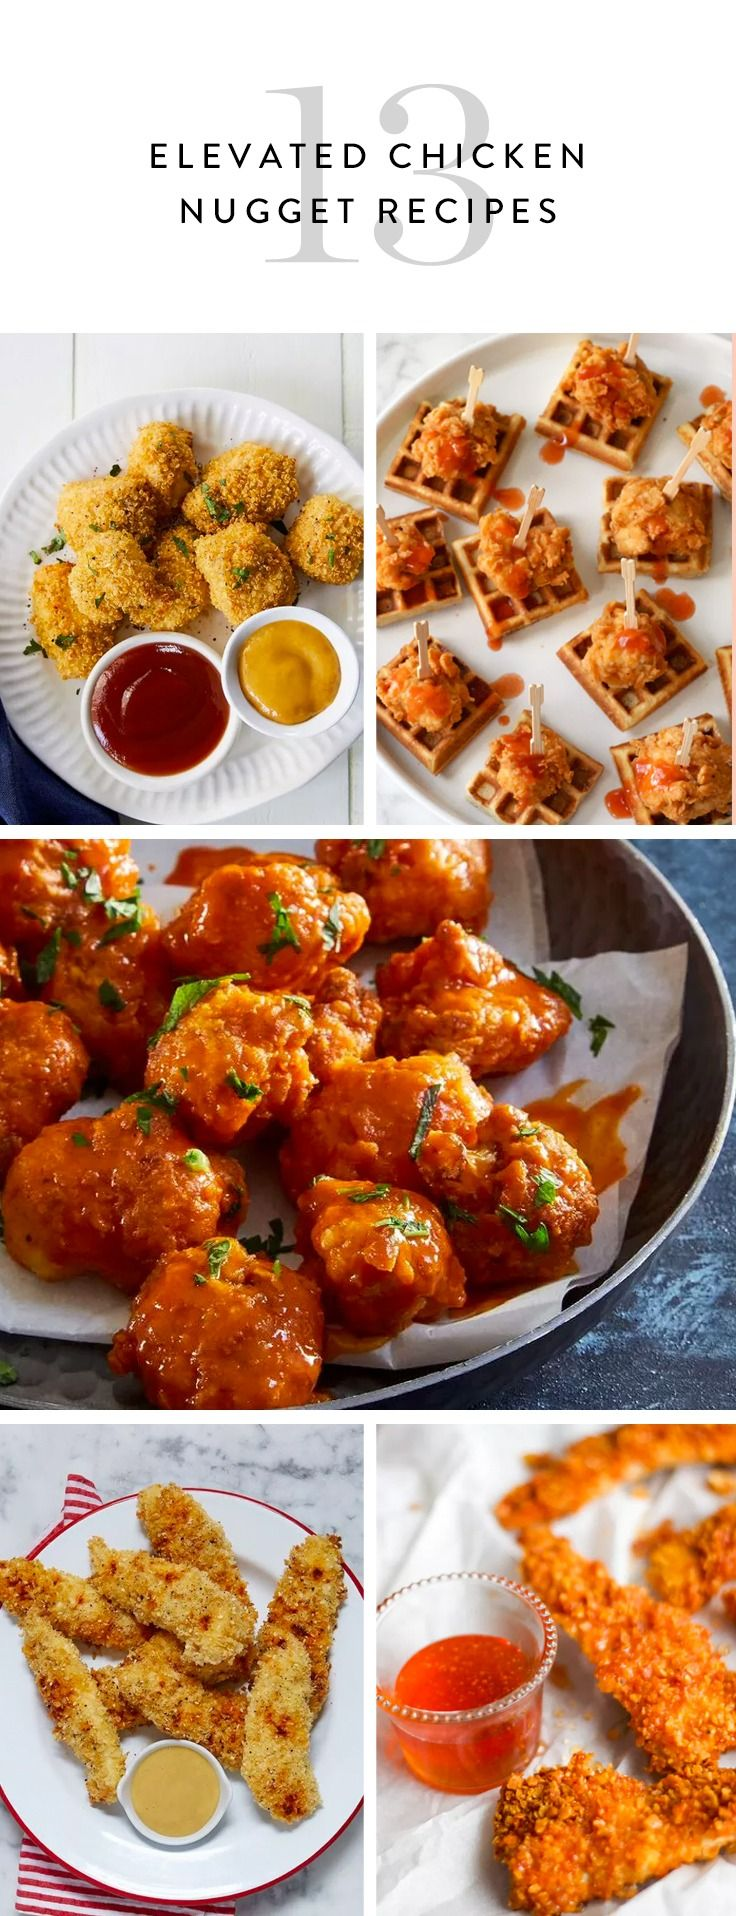 13 Fancy Chicken Nugget Recipes That Prove Finger Foods Aren't Just For Kids